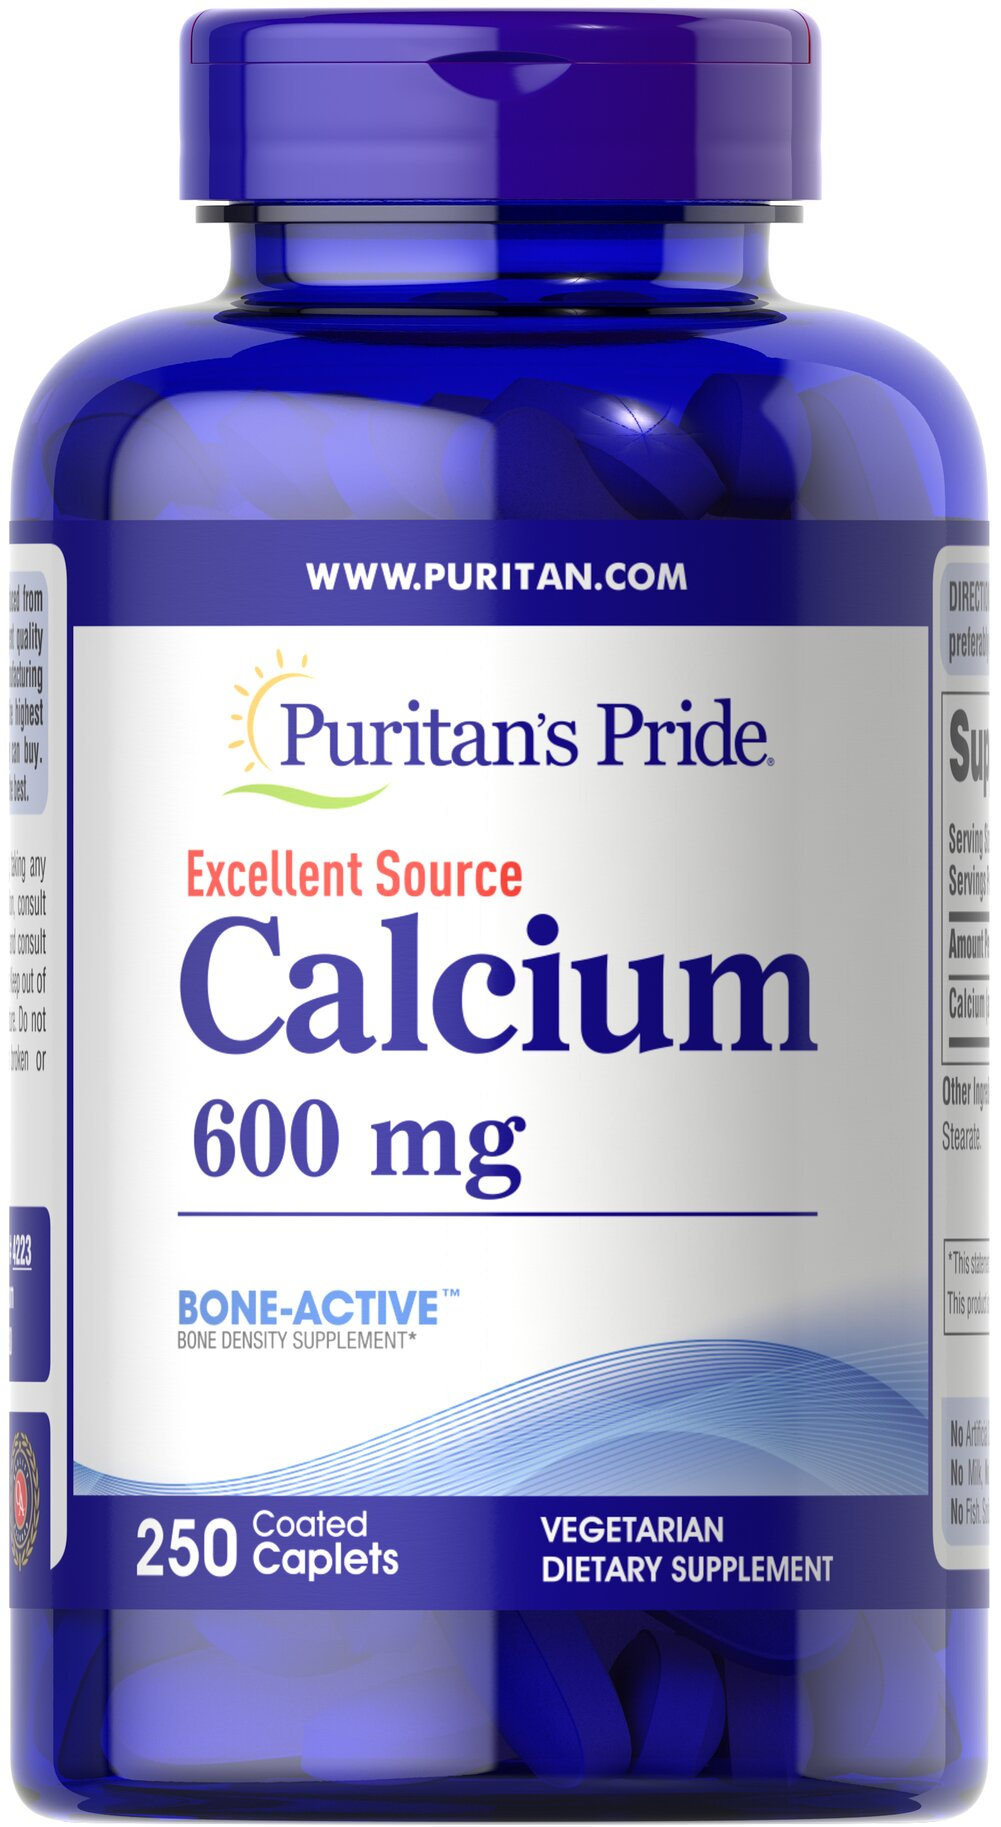 Calcium Carbonate 600 mg <p>Supports Bone Health**</p><p>Many factors contribute to the development of osteoporosis including sex, race, age, and hormonal status. It's important to remember that everyone loses bone mass with age. Regular exercise, a healthy diet and adequate Calcium intake helps maintain good bone health and may reduce the high risk of osteoporosis later in life.</p> 250 Coated Caplets 600 mg